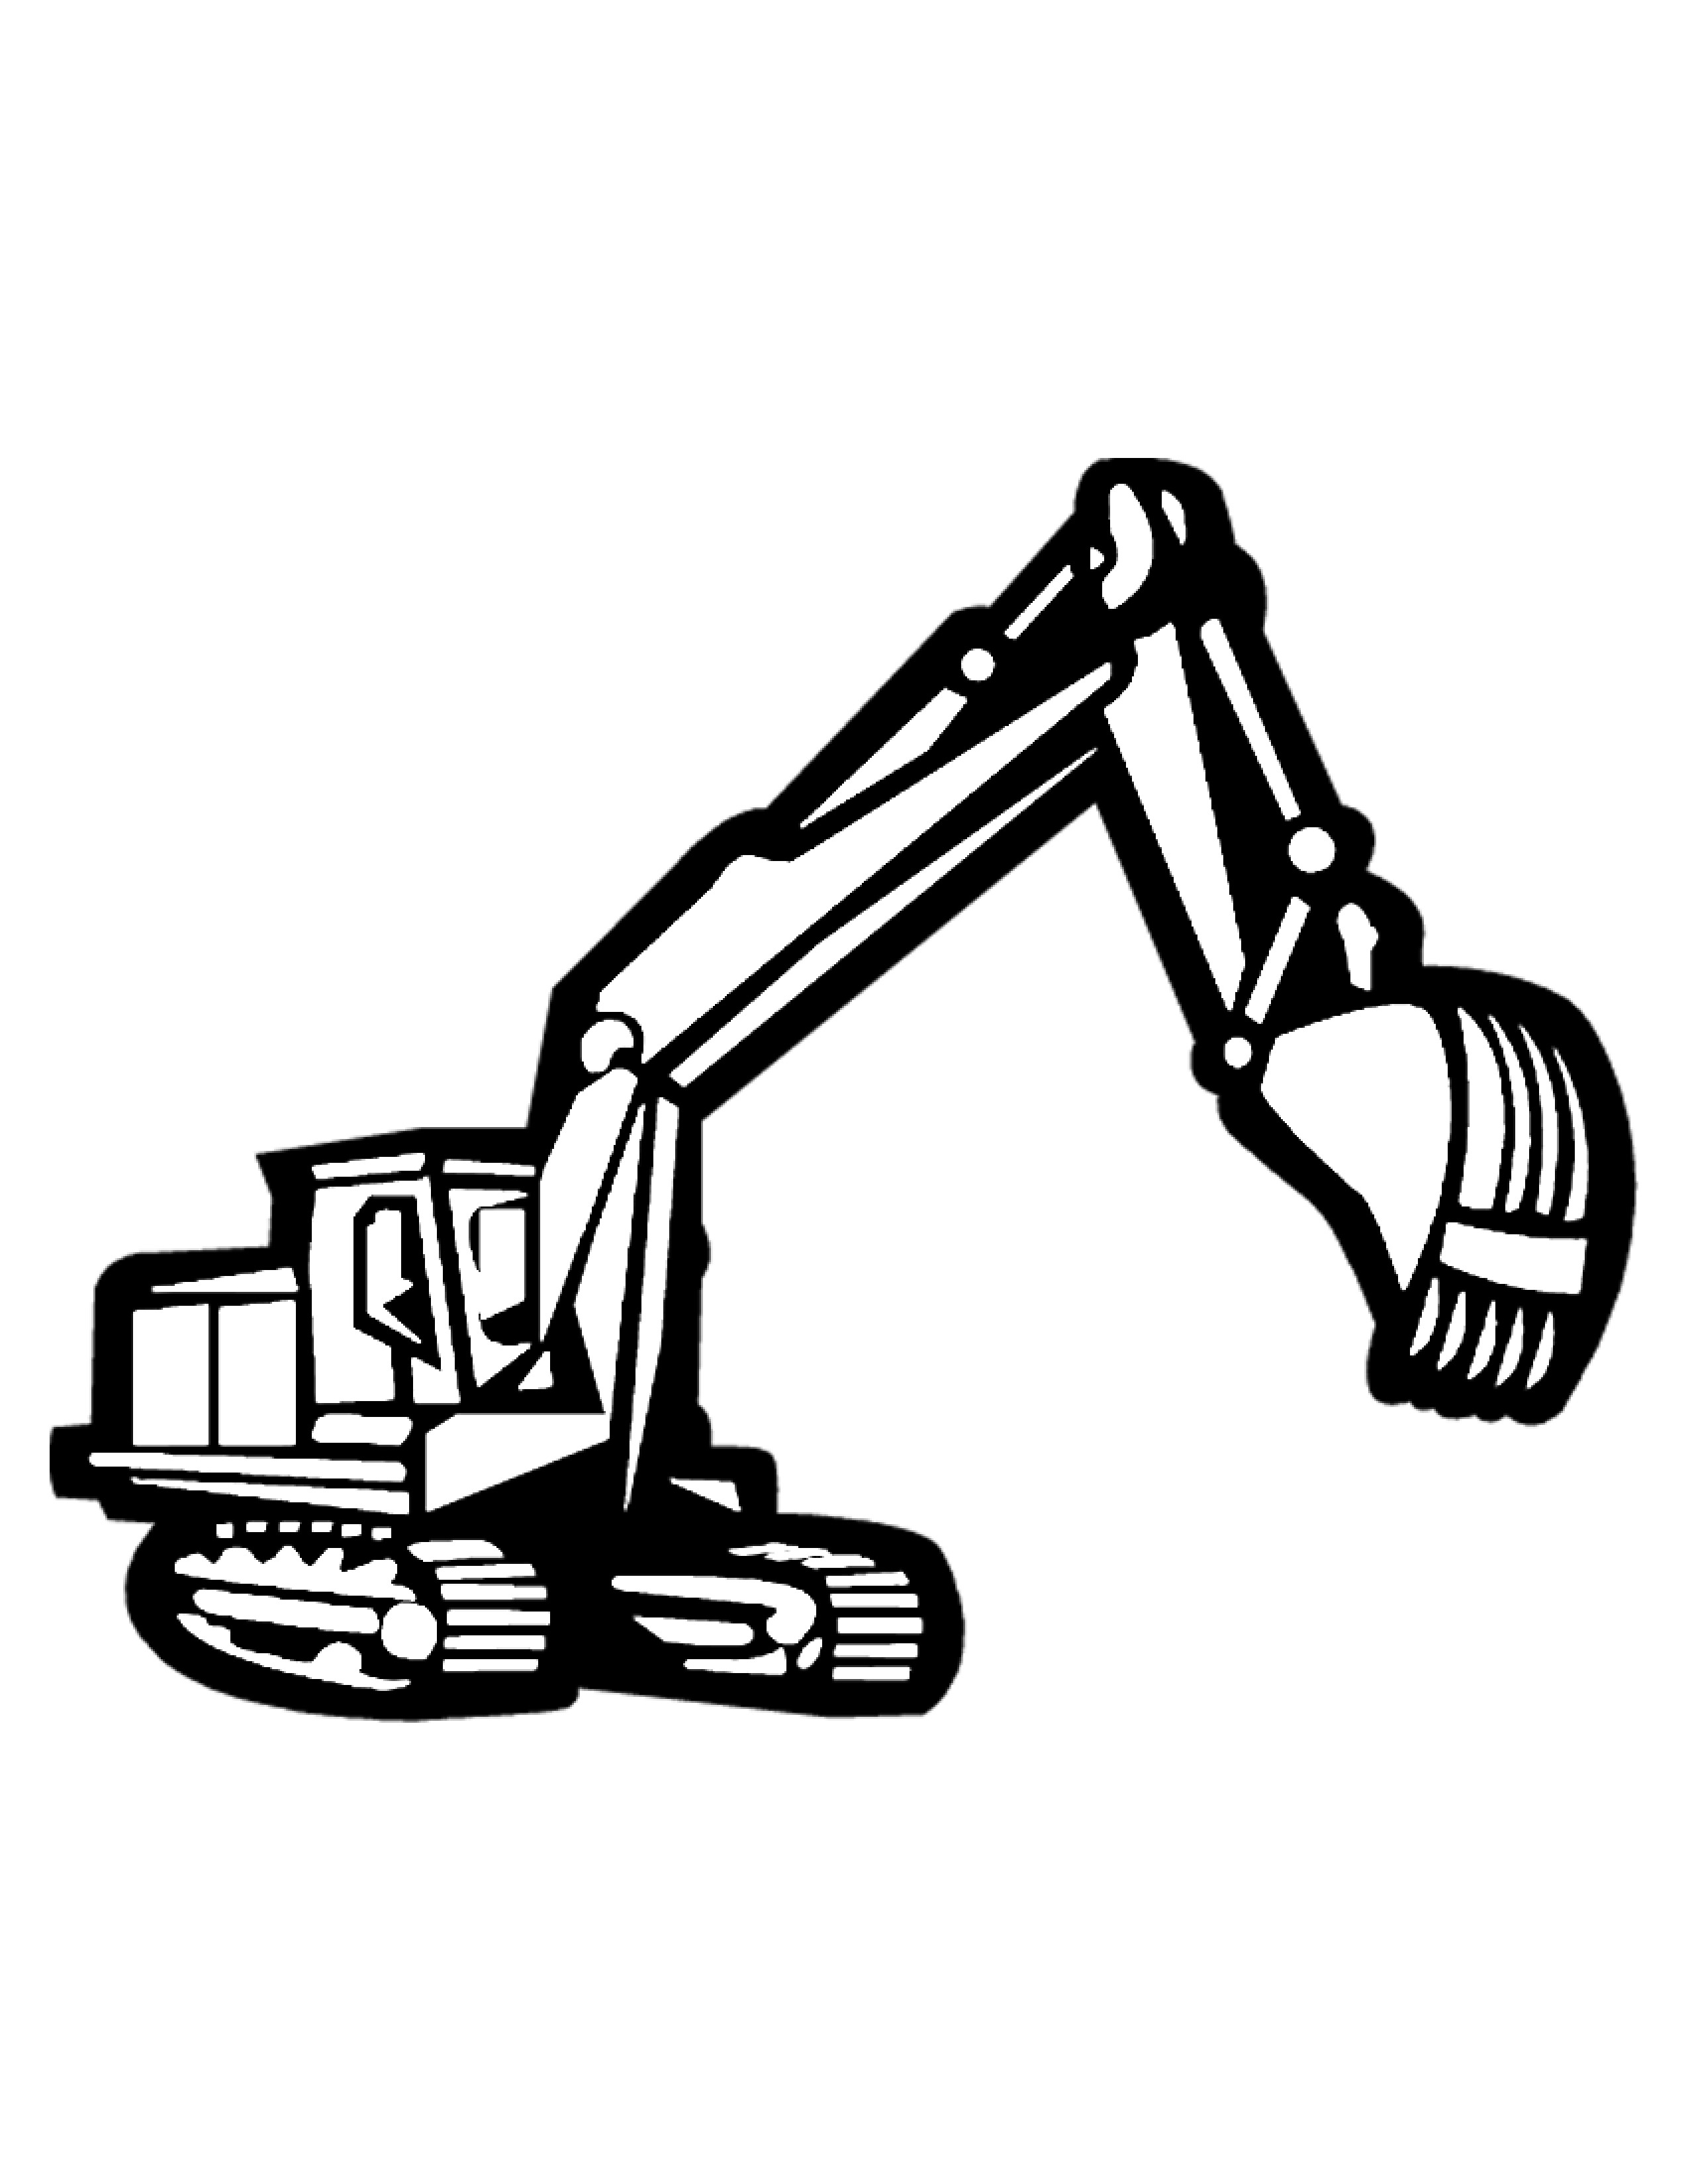 Excavator clipart black and white. Innovative construction equipment coloring